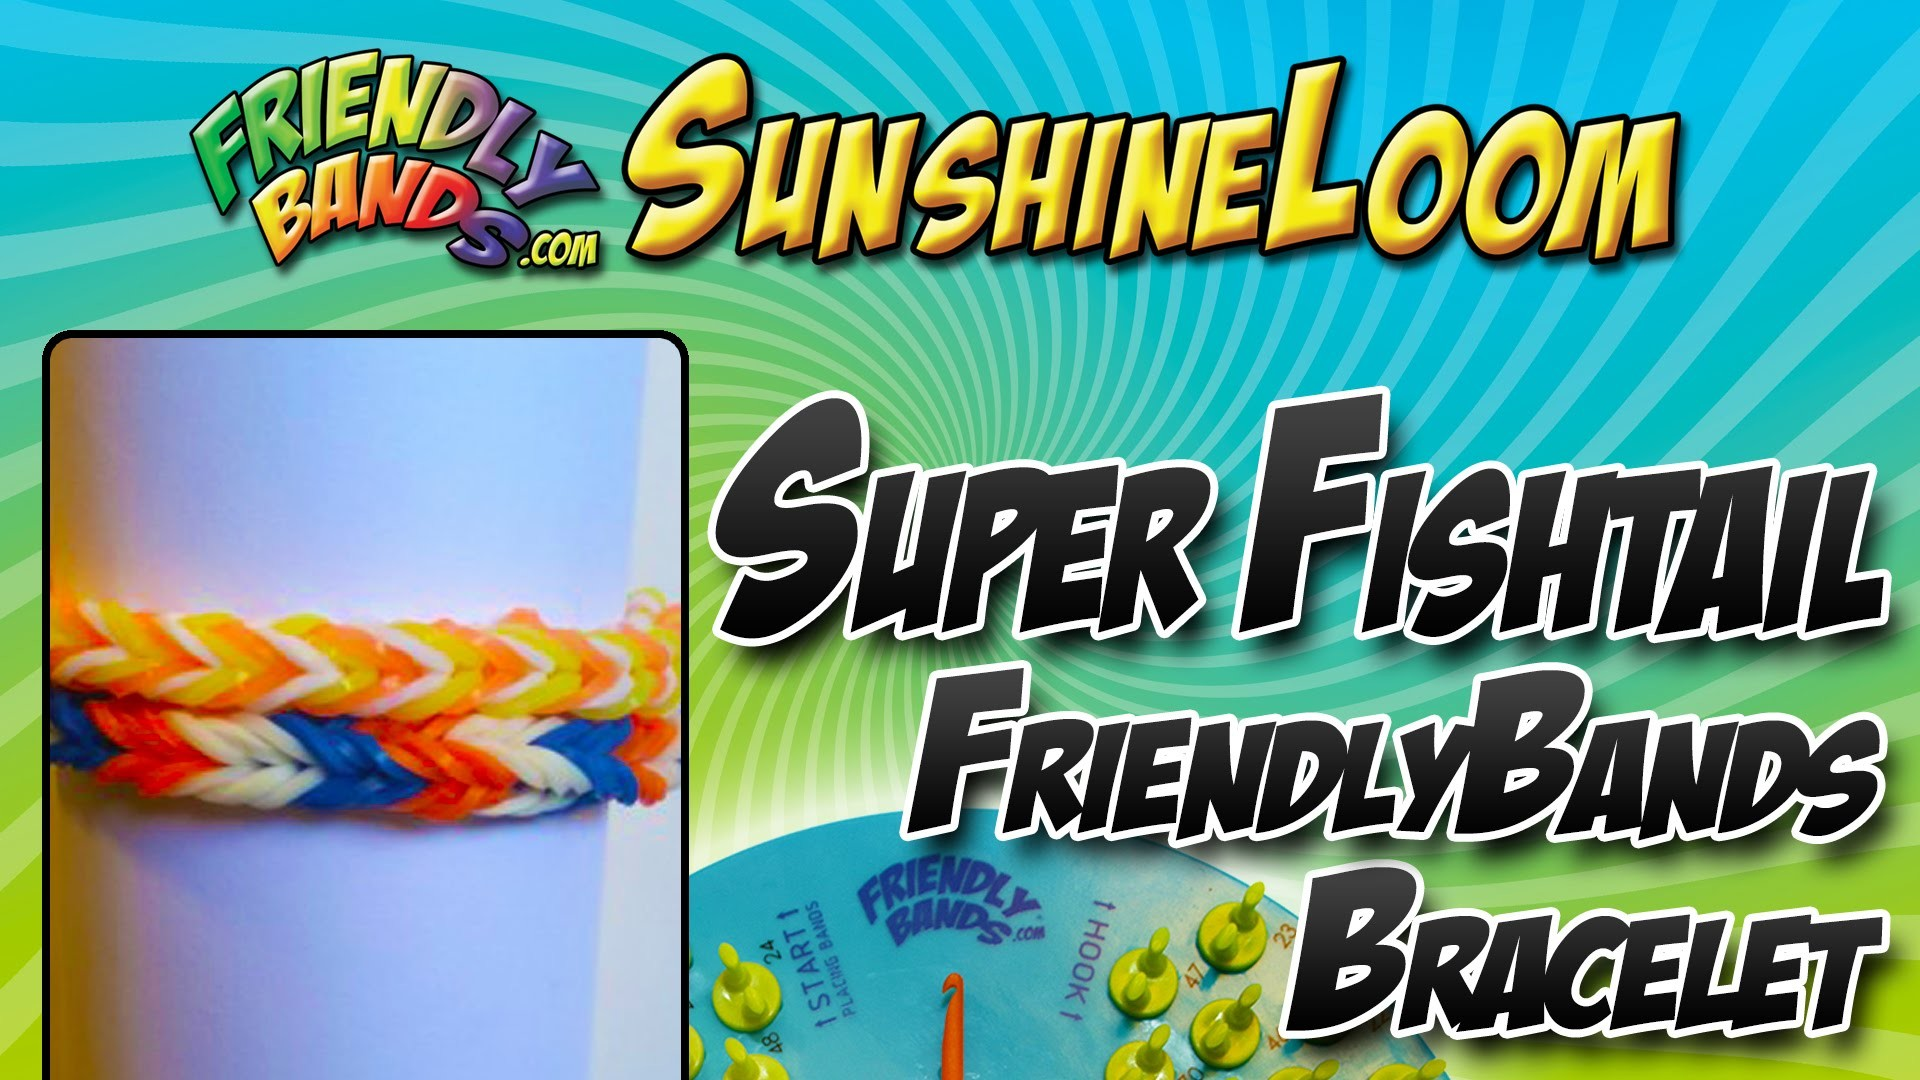 How to Make a FriendlyBands - Super Fishtail Bracelet Tutorial